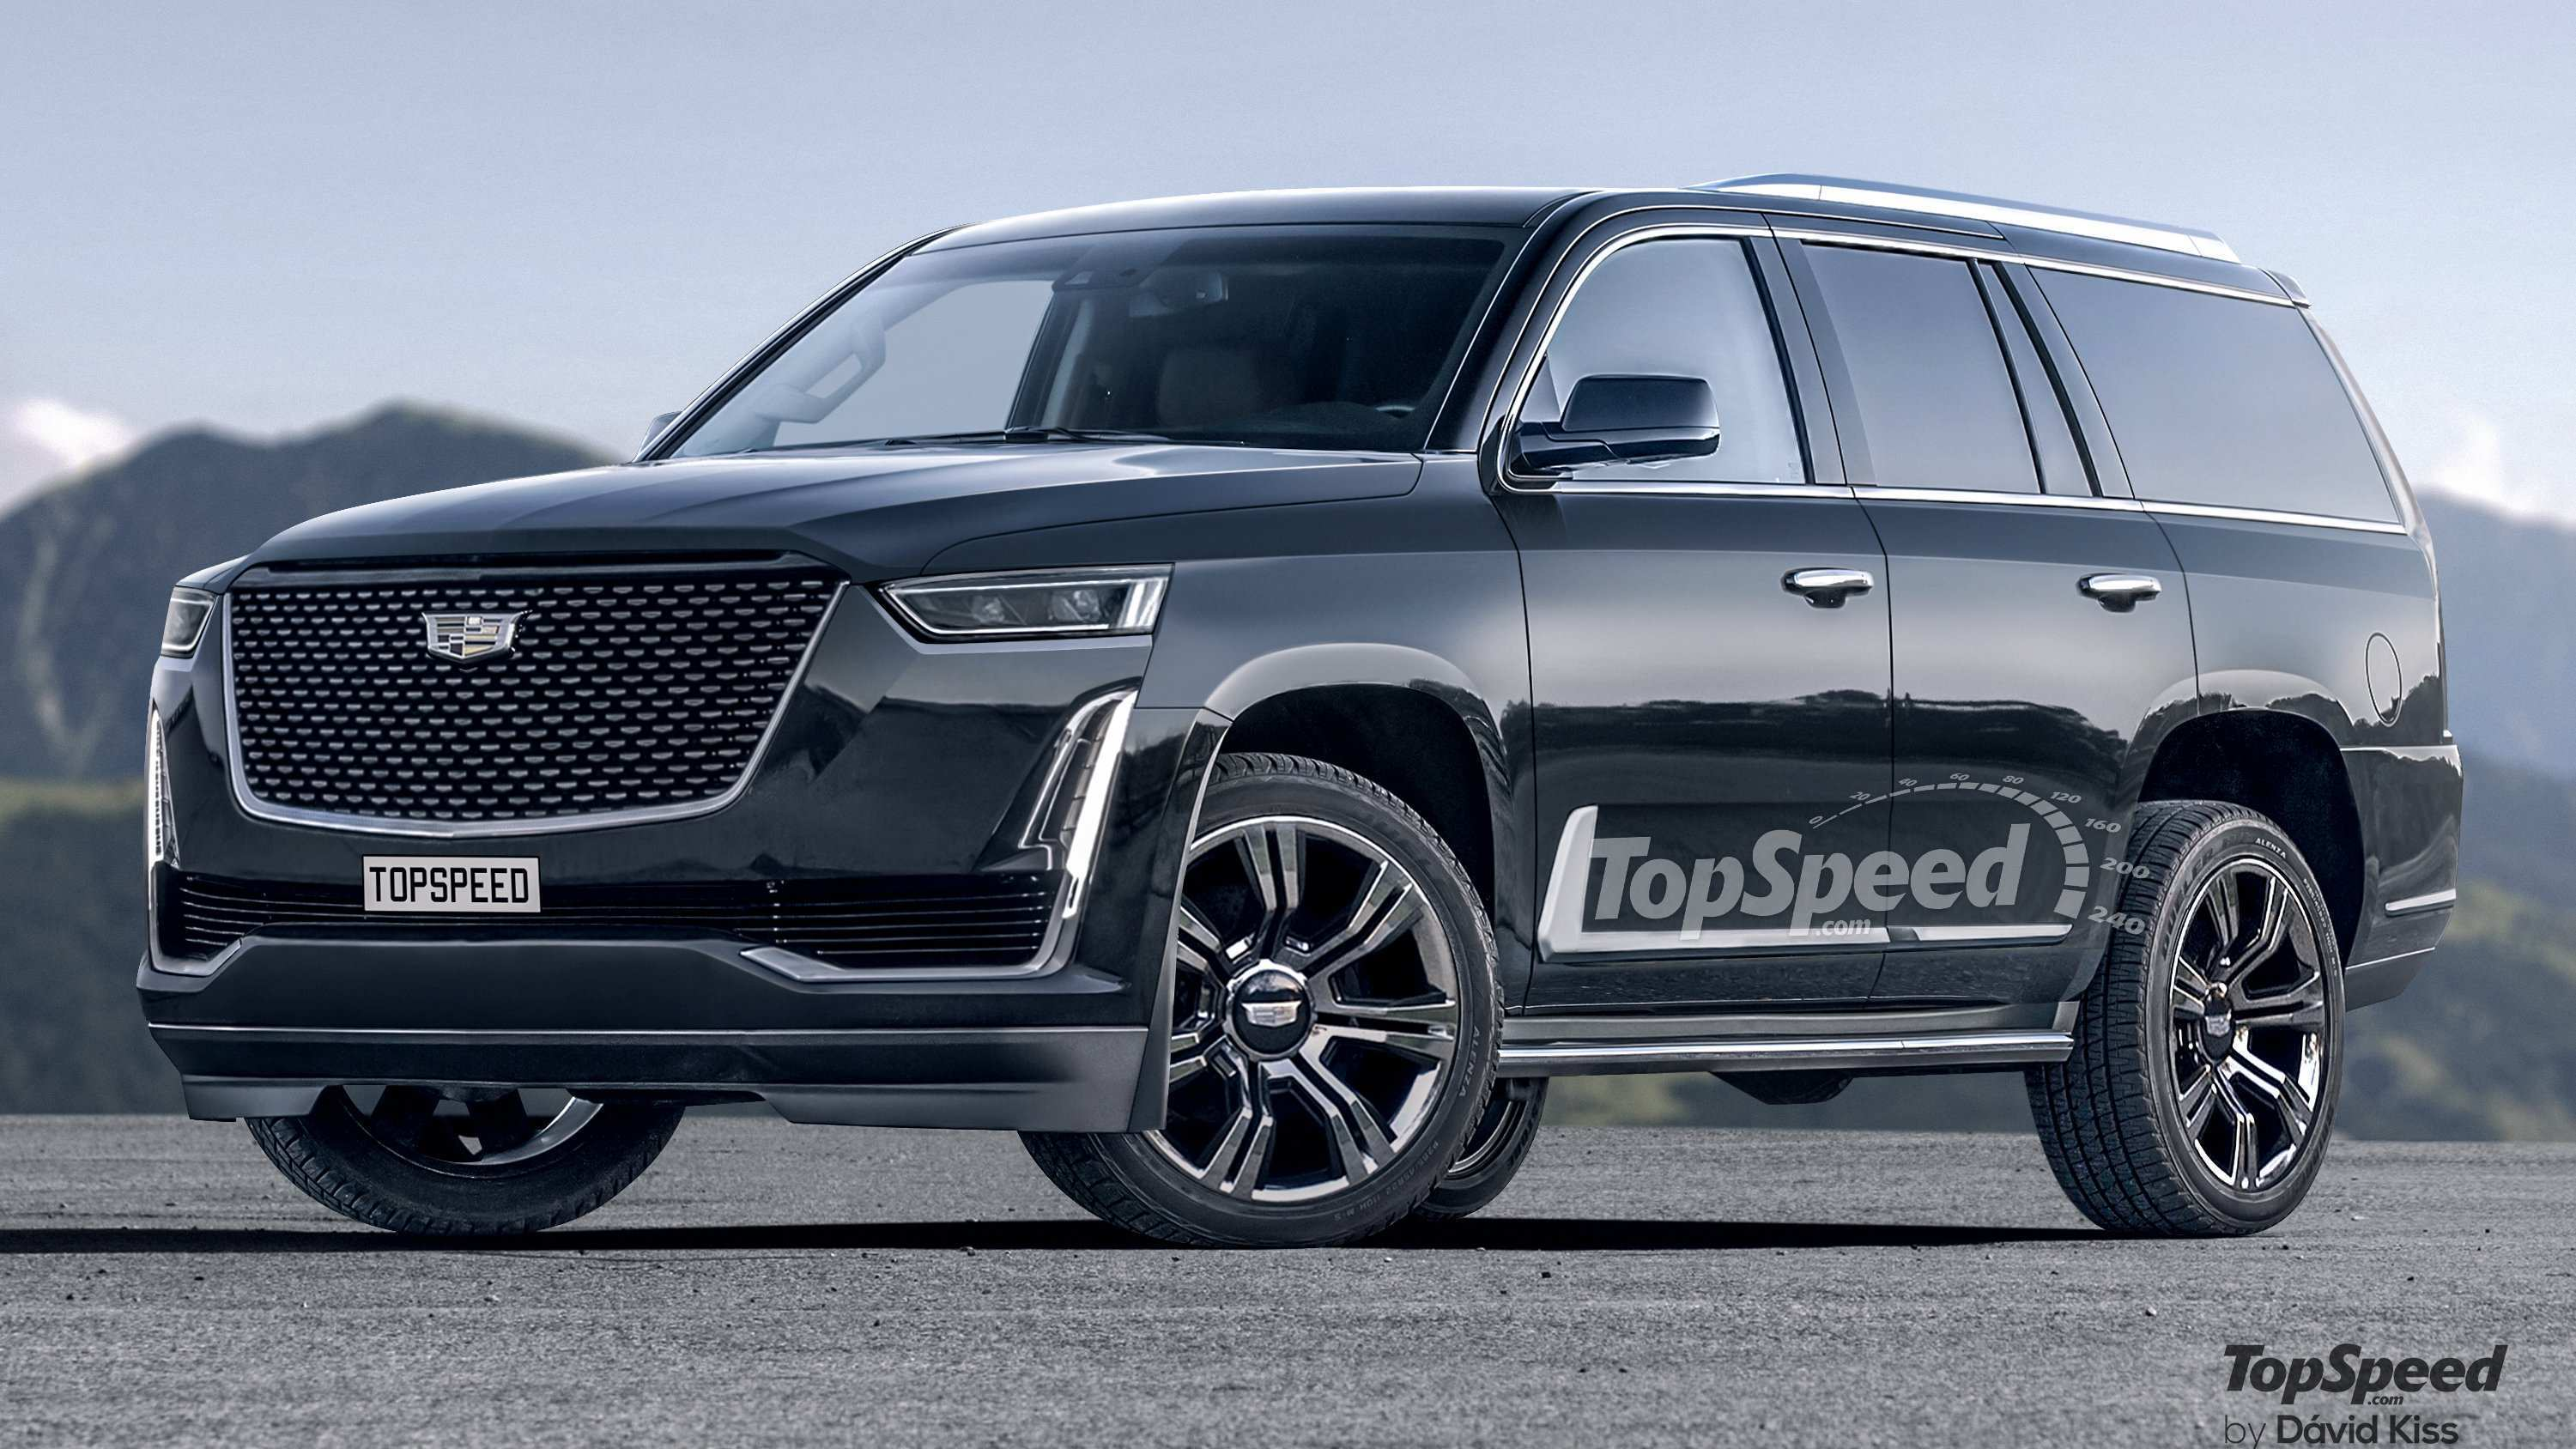 78 The Best 2020 Cadillac Pickup Truck Prices